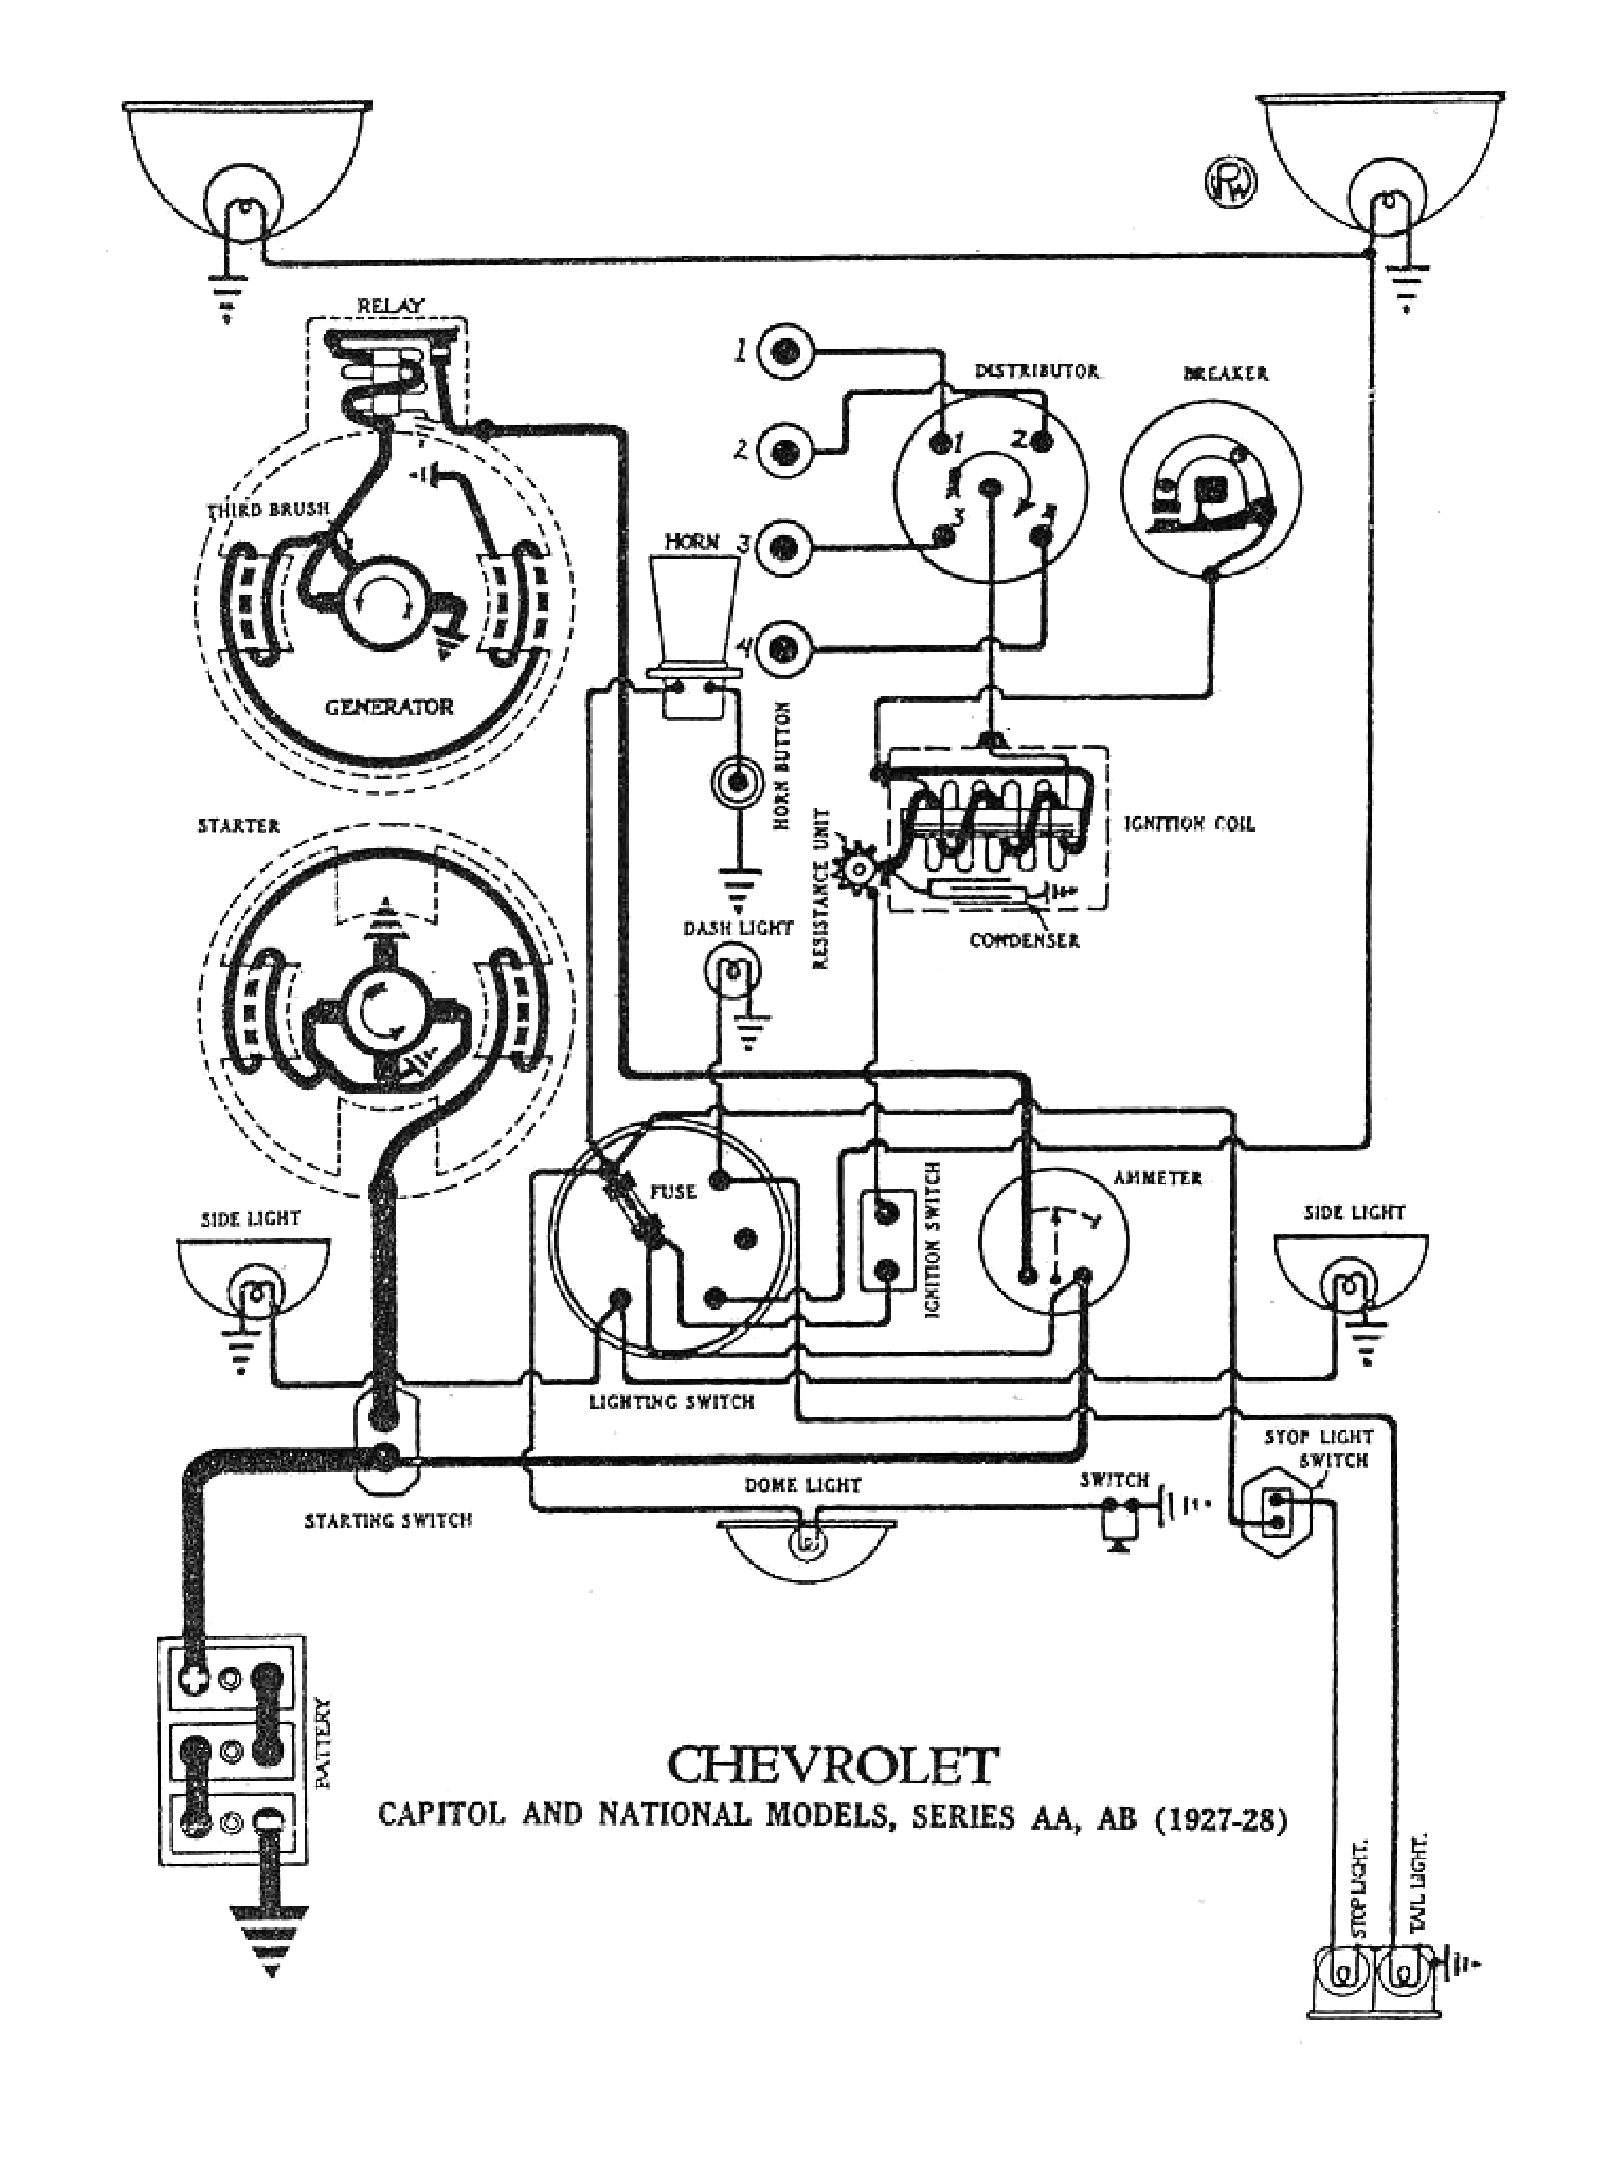 hight resolution of 1930 ford wiring diagram wiring diagramsignition circuit diagram for the 1940 47 buick all models wiring1930